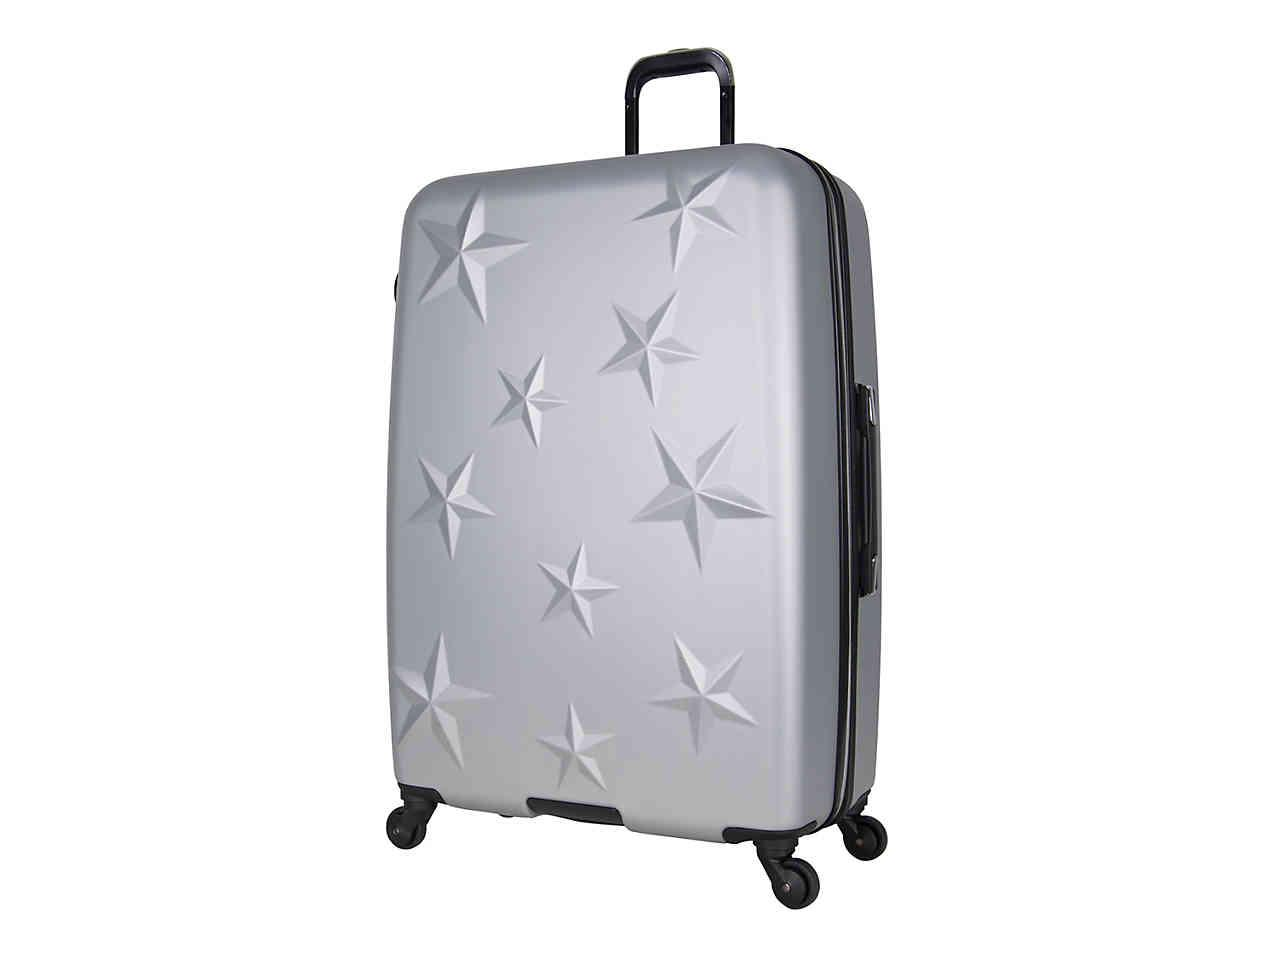 d57fa4ca4 Aimee Kestenberg Star Molded 28-inch Checked Hard Shell Luggage in ...